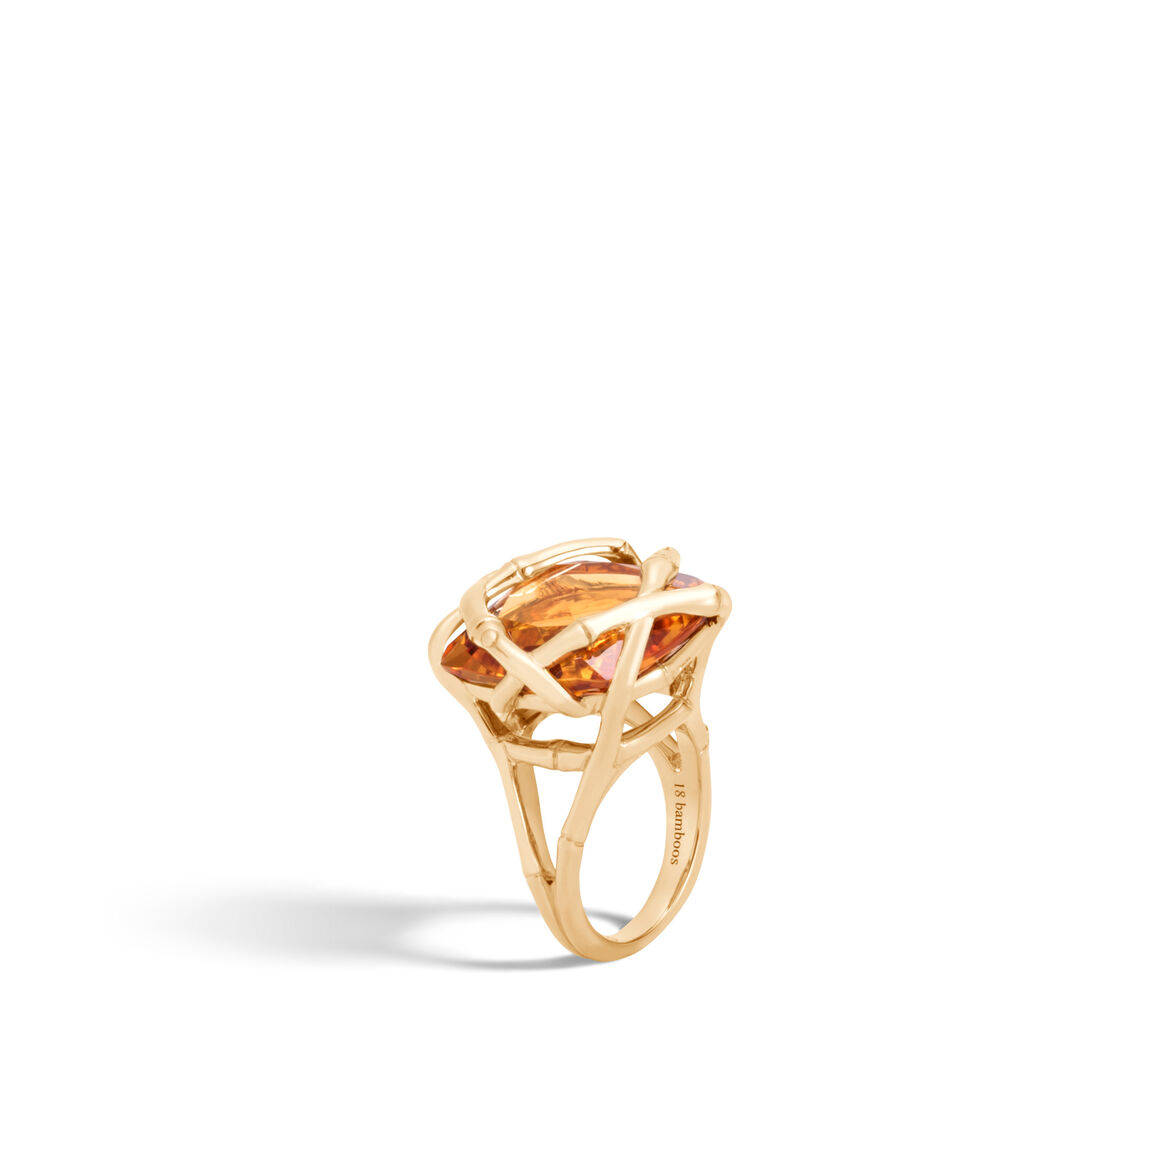 Bamboo Ring in 18K Gold with 19MM Gemstone